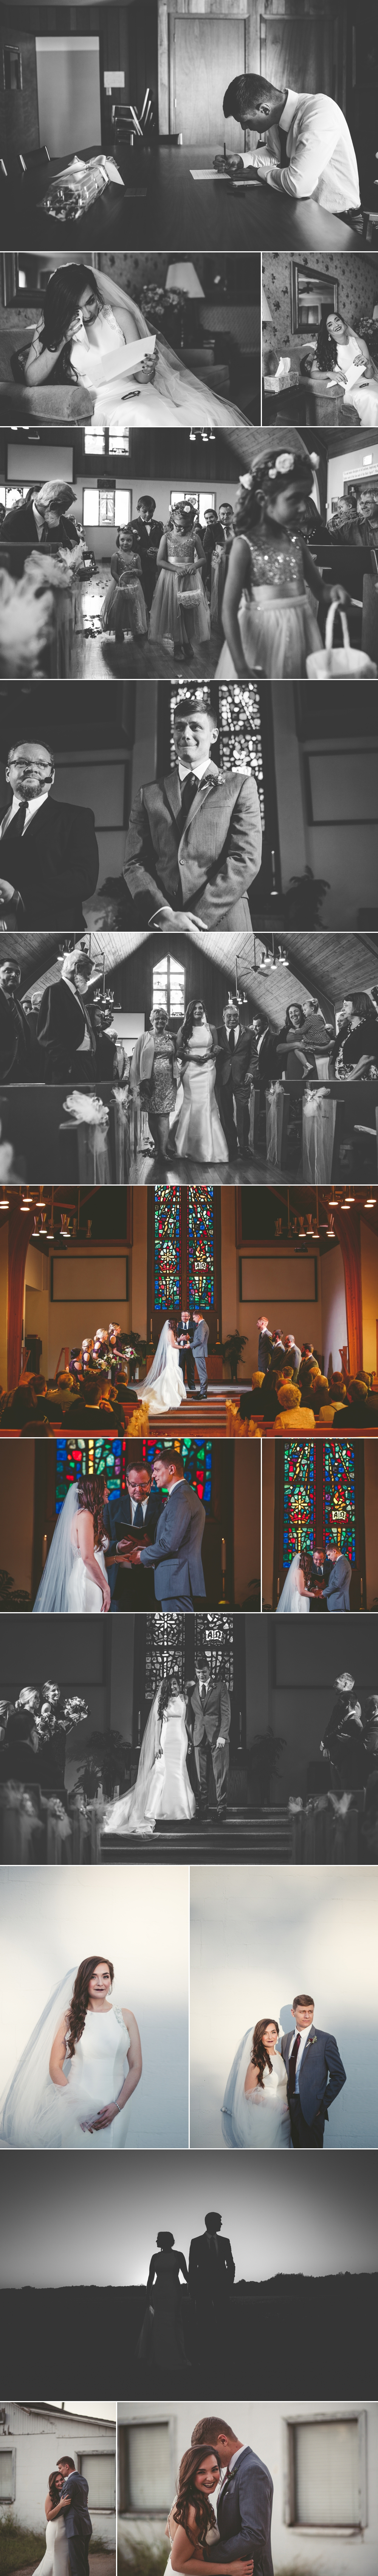 jason_domingues_photography_best_kansas_city_wedding_photographer_kc_weddings_tonganoxie_ks_brunswick_ballroom_0002.JPG